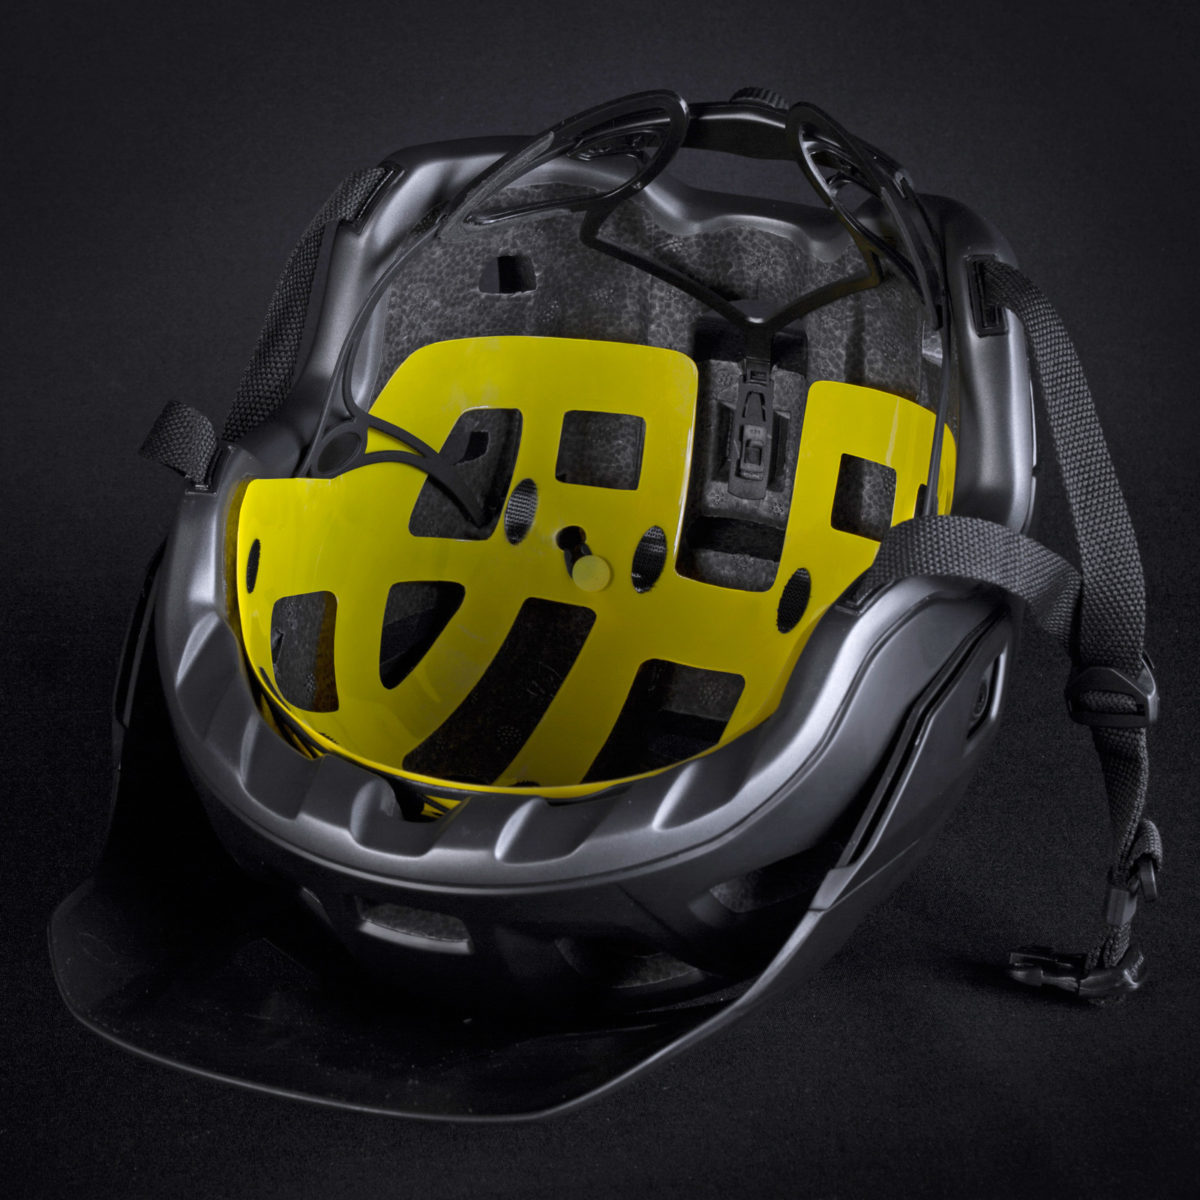 MET Roams into all mountain with new trail helmet